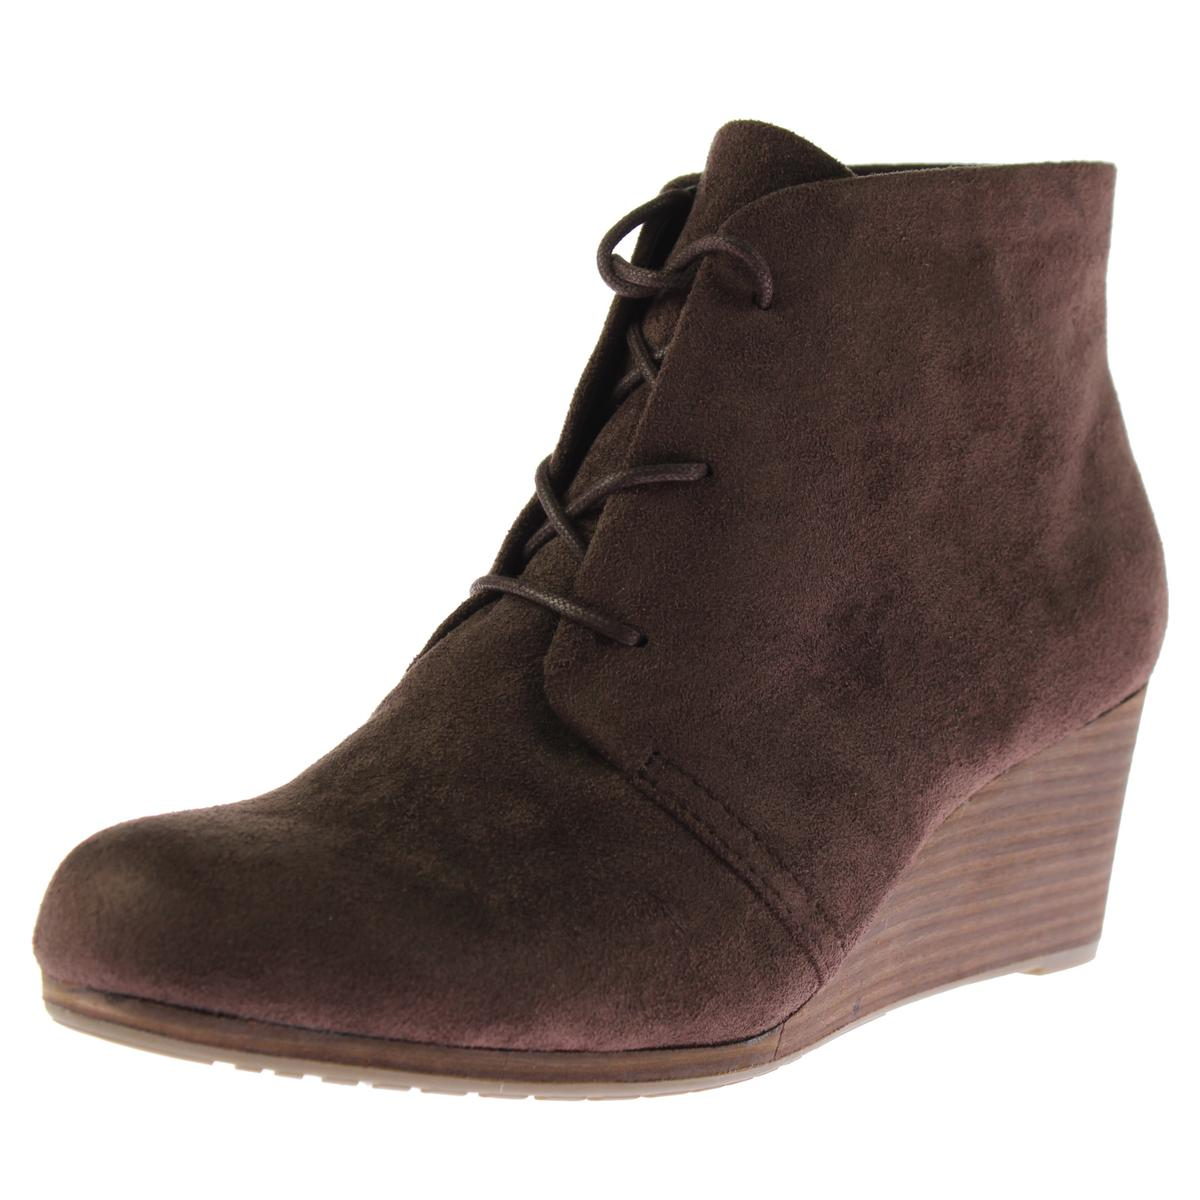 cacc235dd42 Details about Dr. Scholl s Womens Dakota Brown Boho Wedge Boots Shoes 6  Medium (B